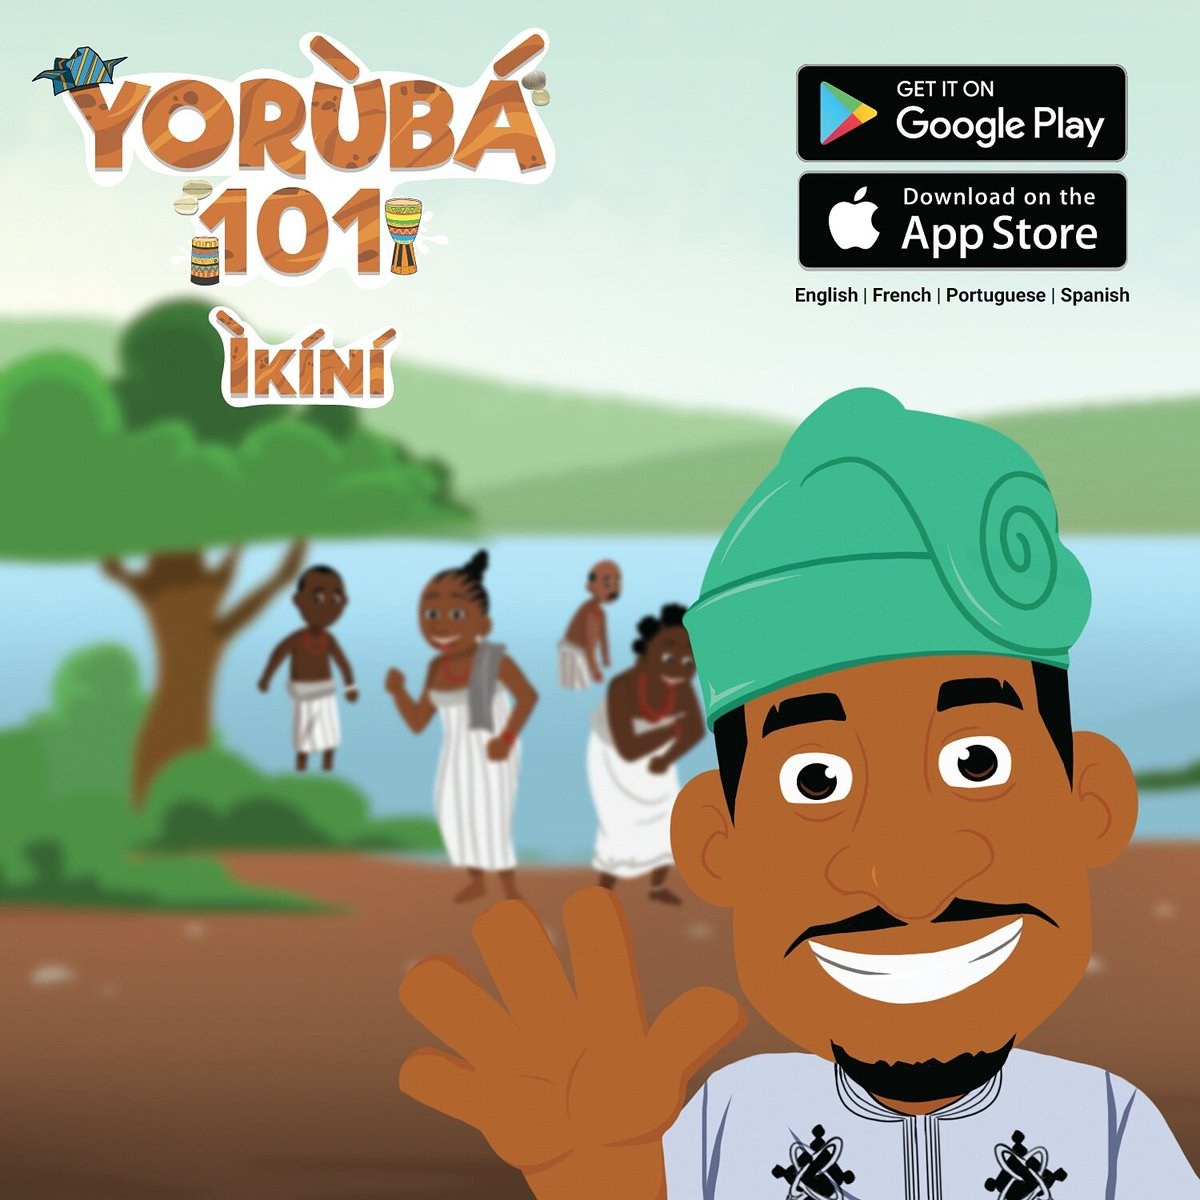 Genii Games On Twitter Our Yoruba101ikini Is Now Available In